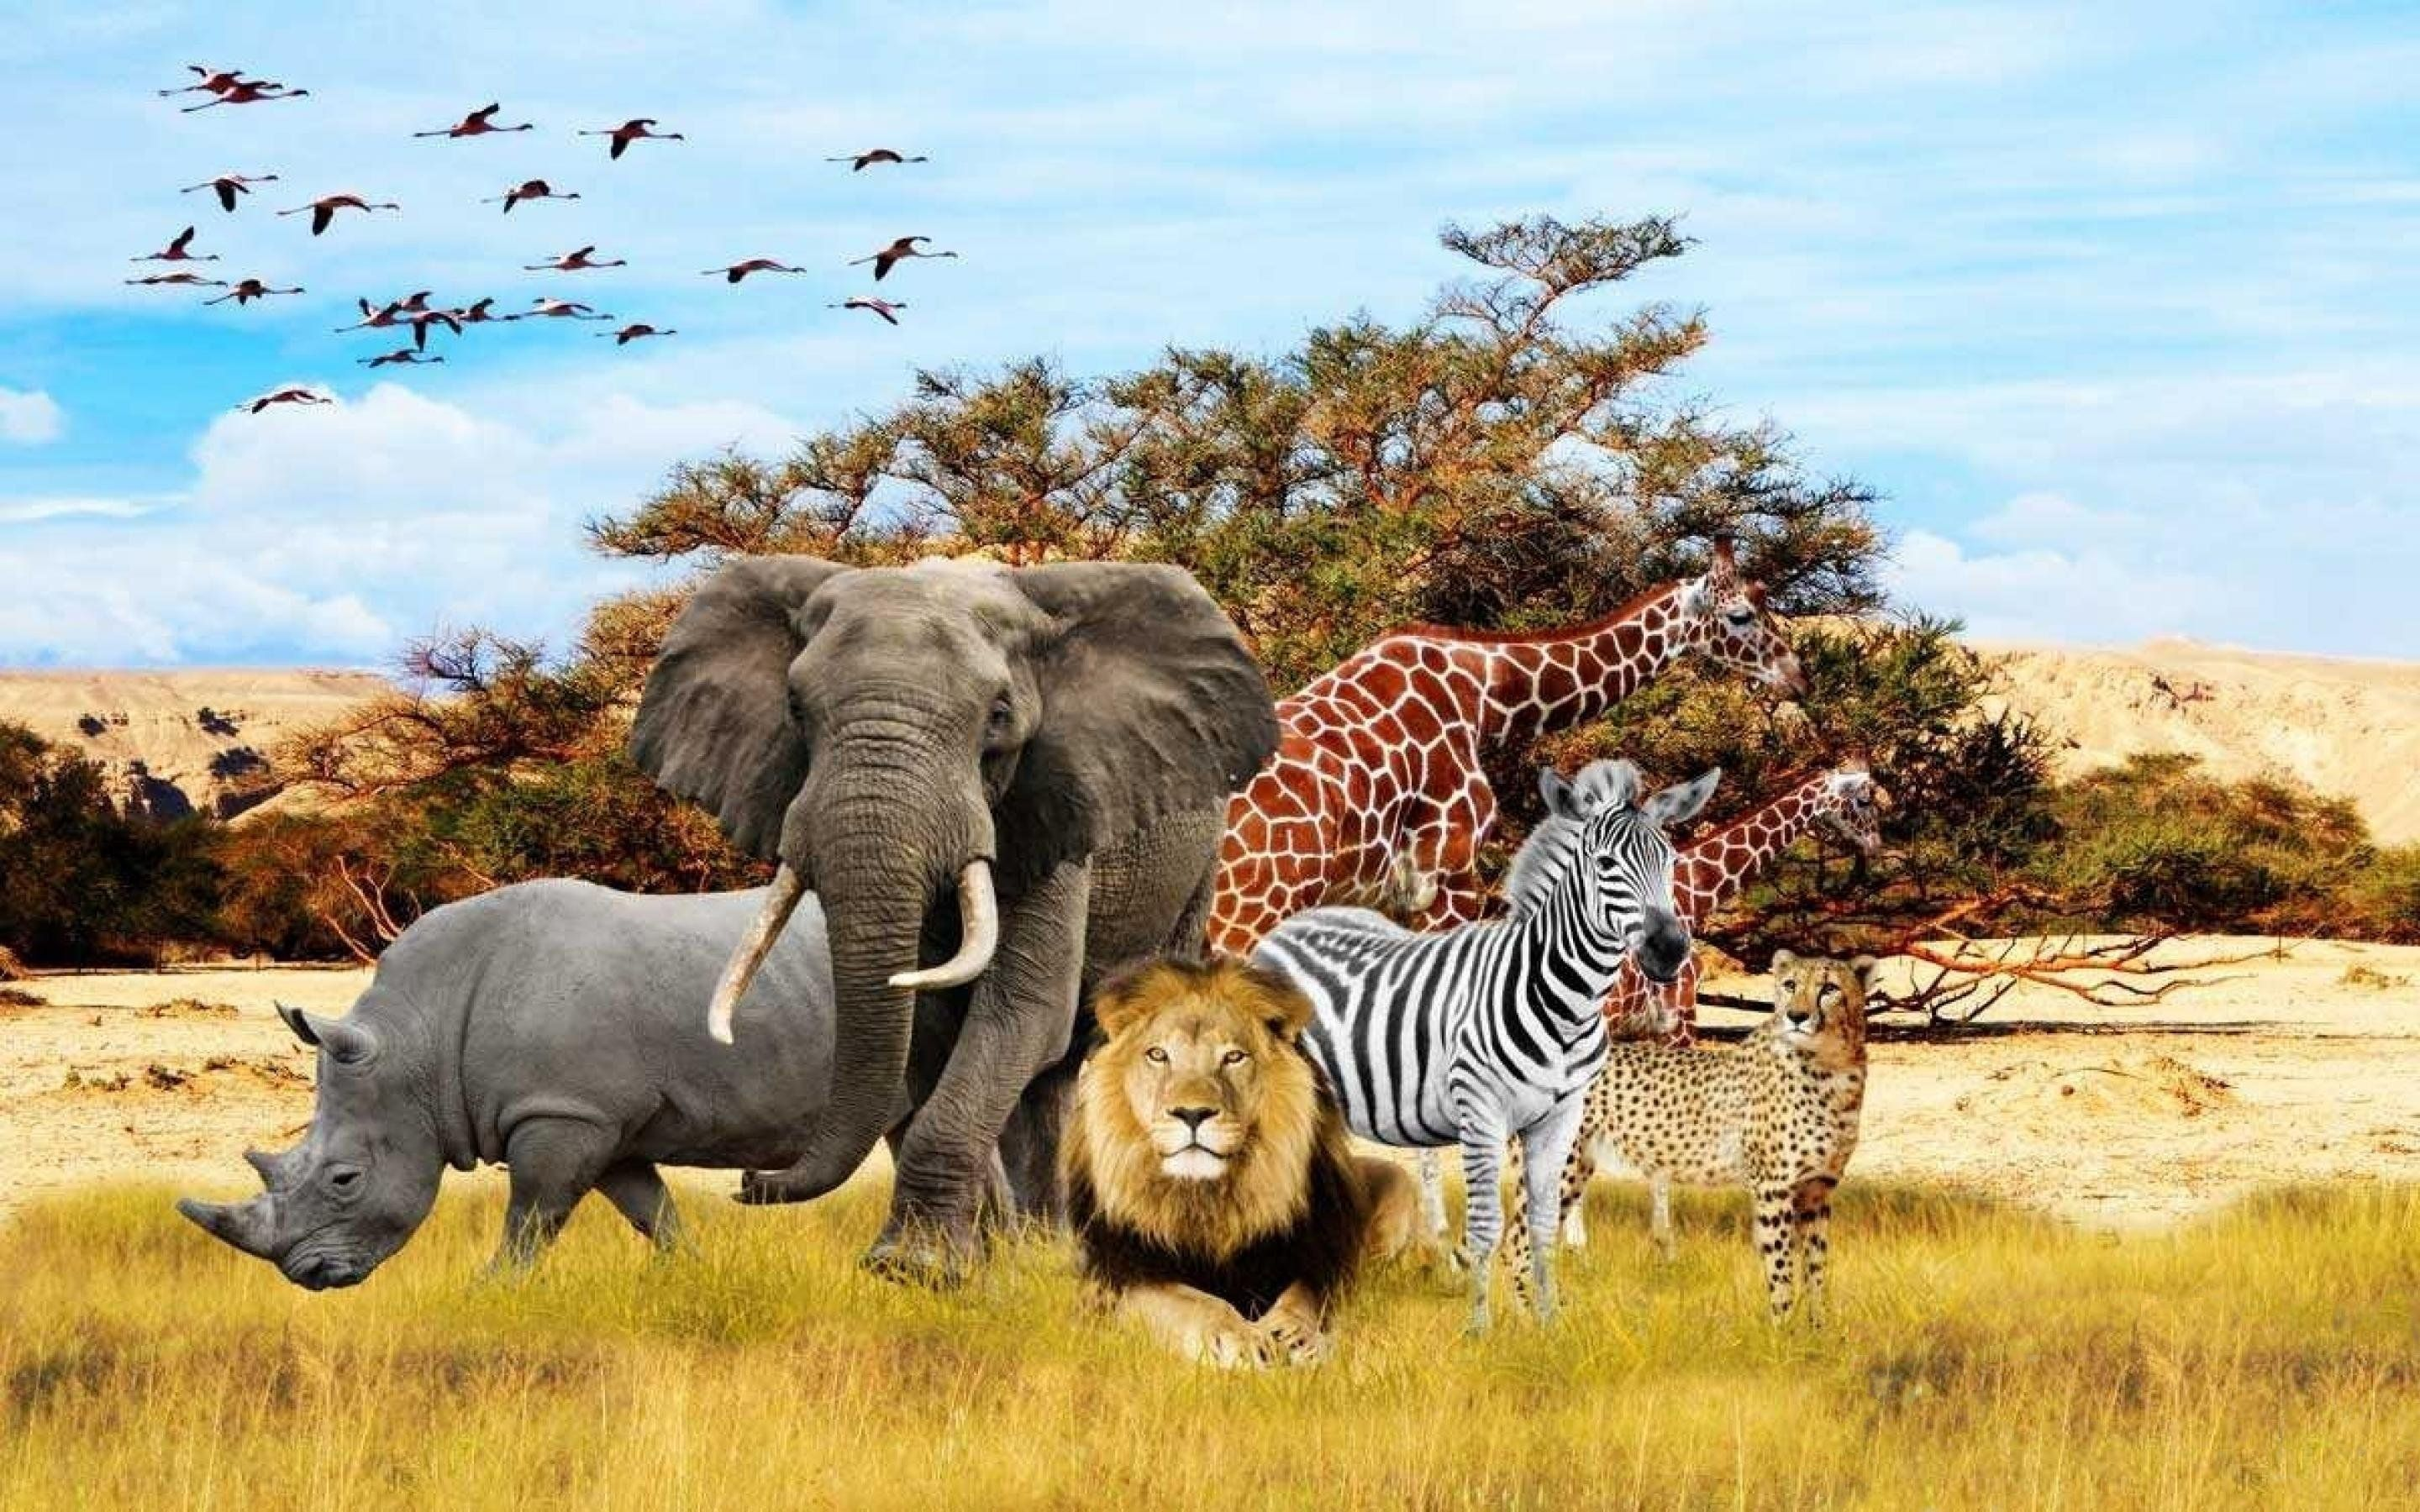 African Animals Wallpapers - Top Free African Animals Backgrounds -  WallpaperAccess